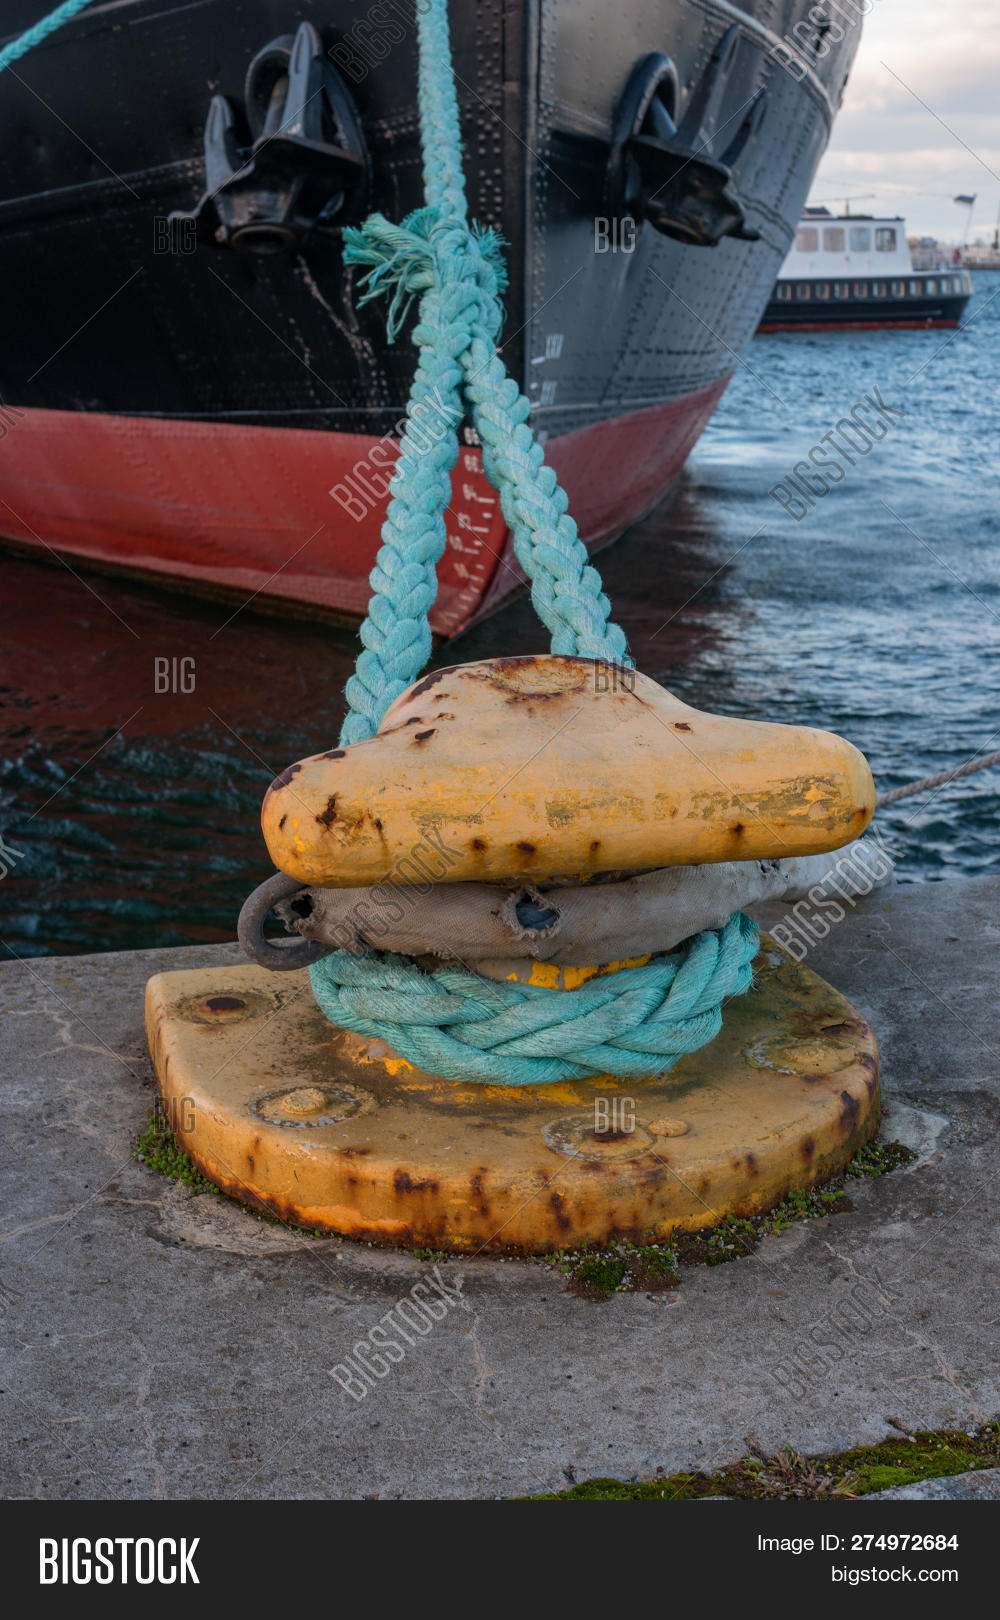 Bollard Mooring Ropes Image & Photo (Free Trial) | Bigstock